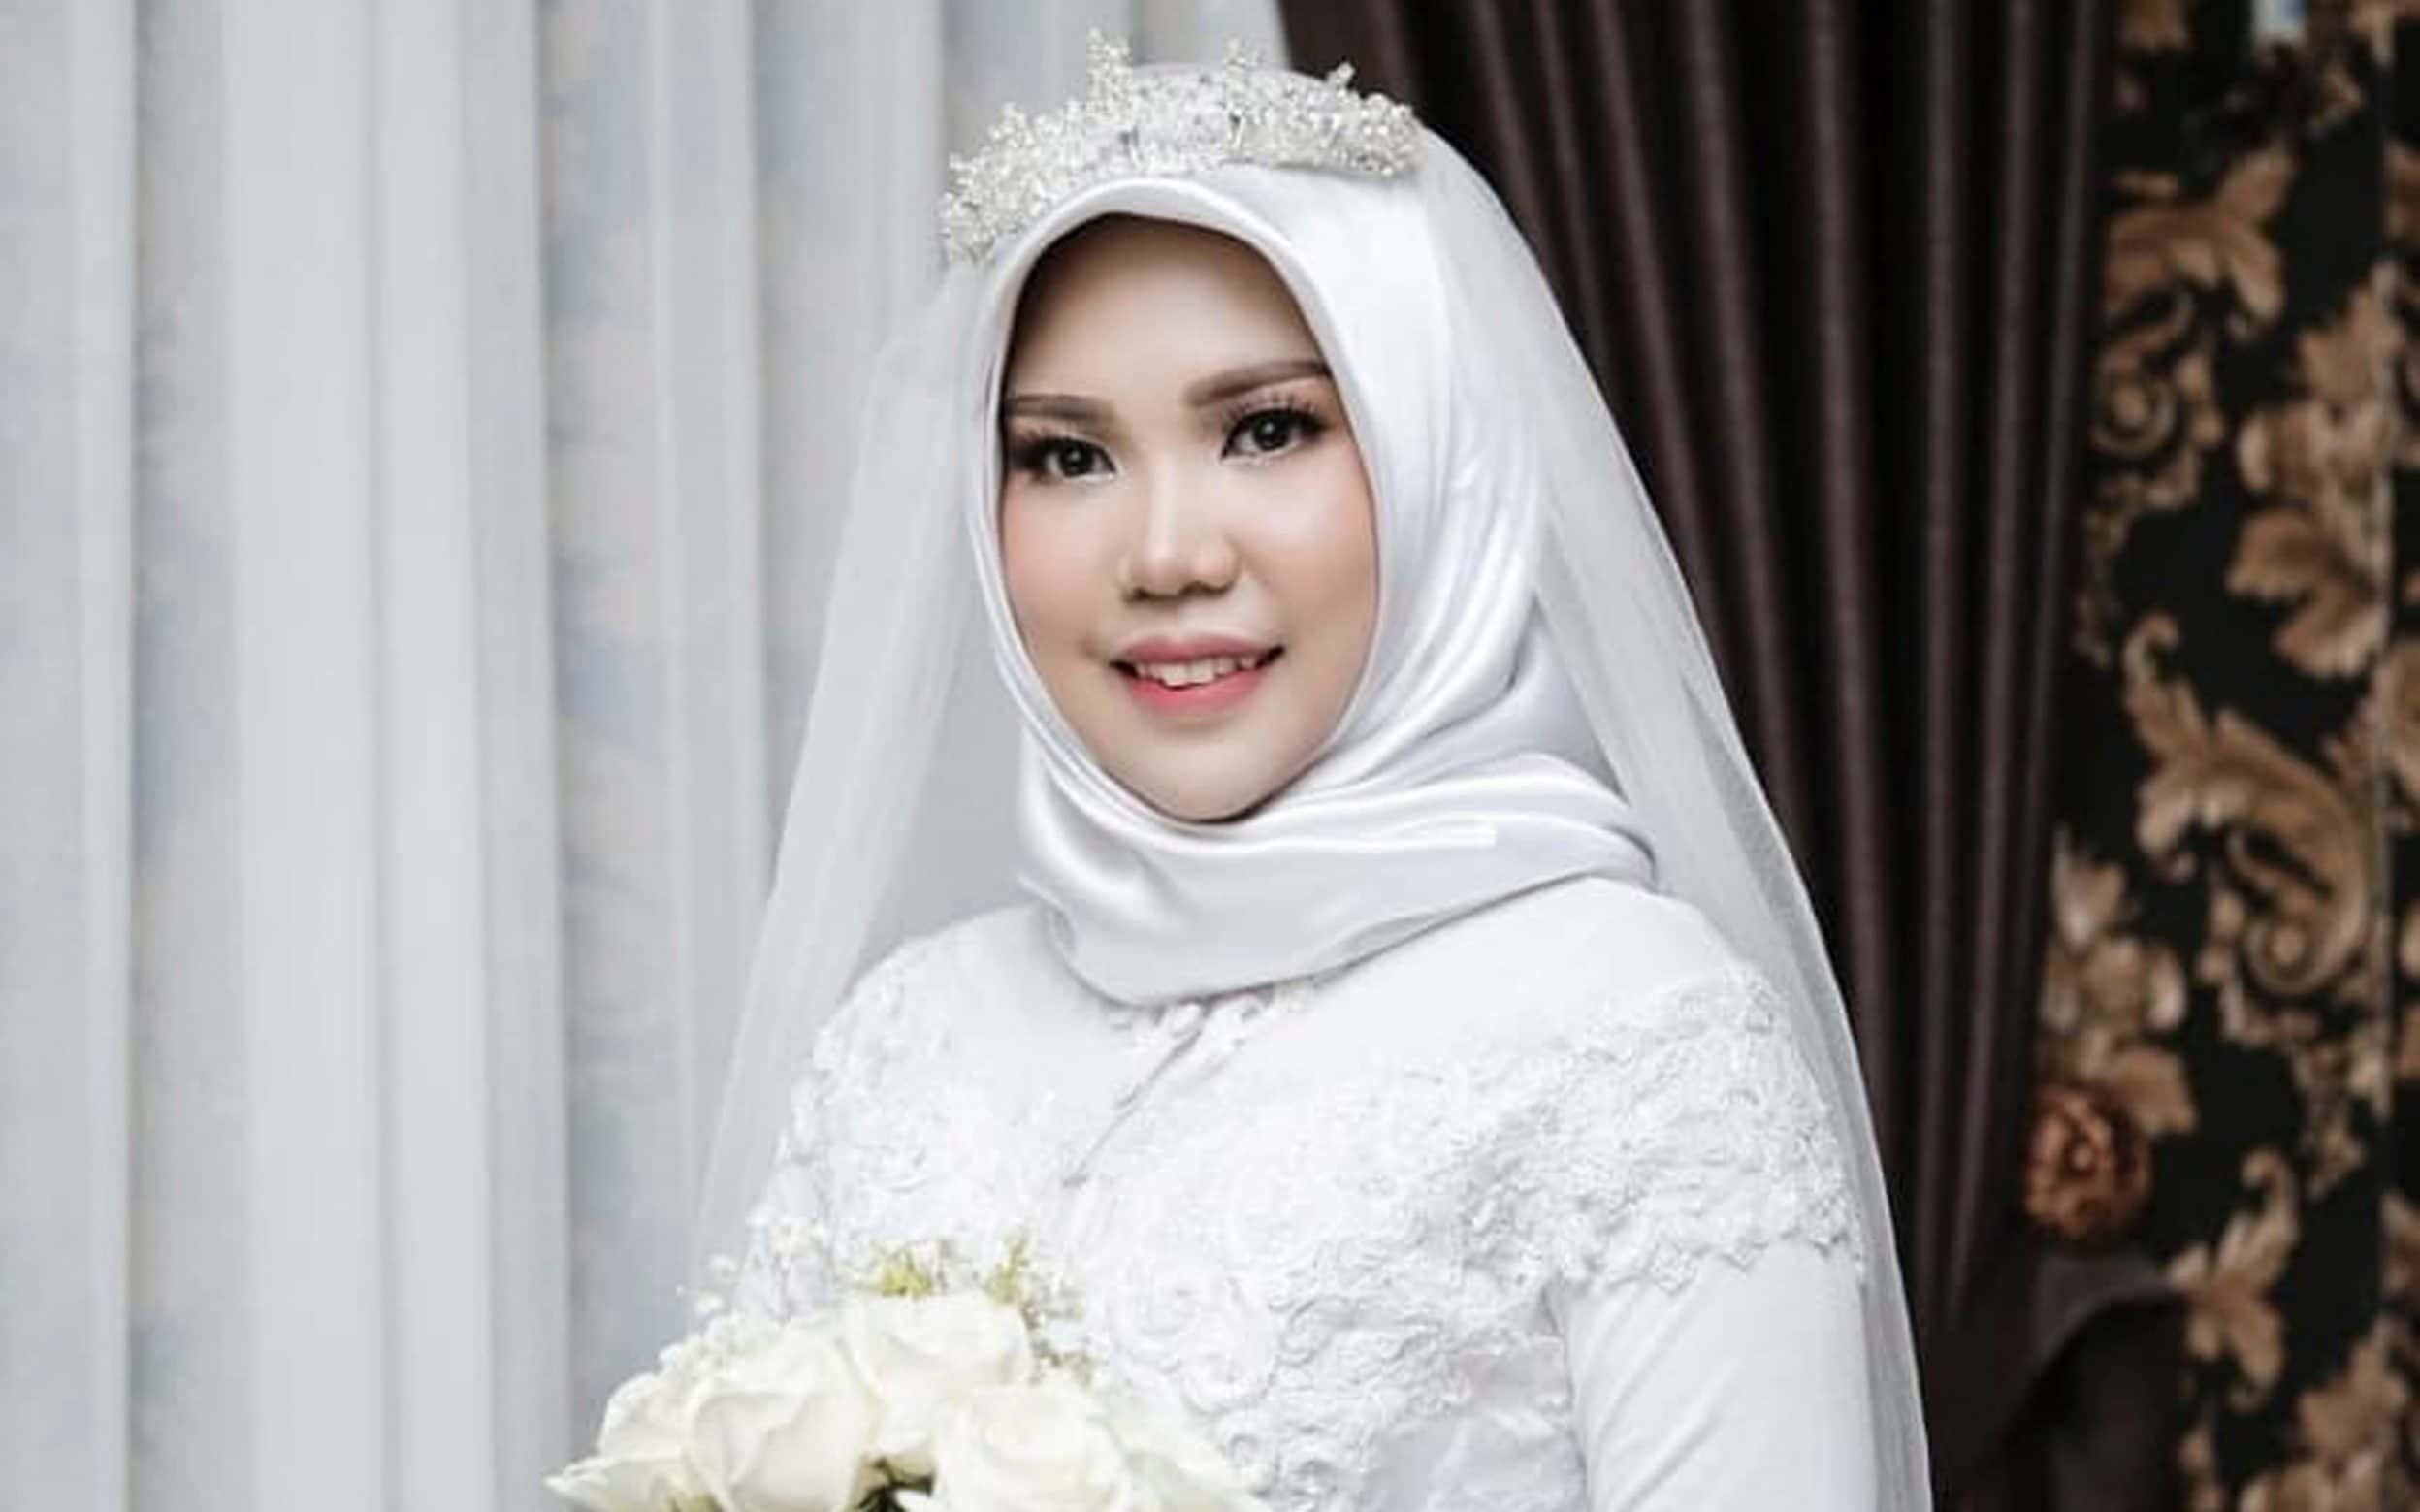 Indonesian Woman Wears Wedding Dress Alone After Fiance Dies In Lion Air